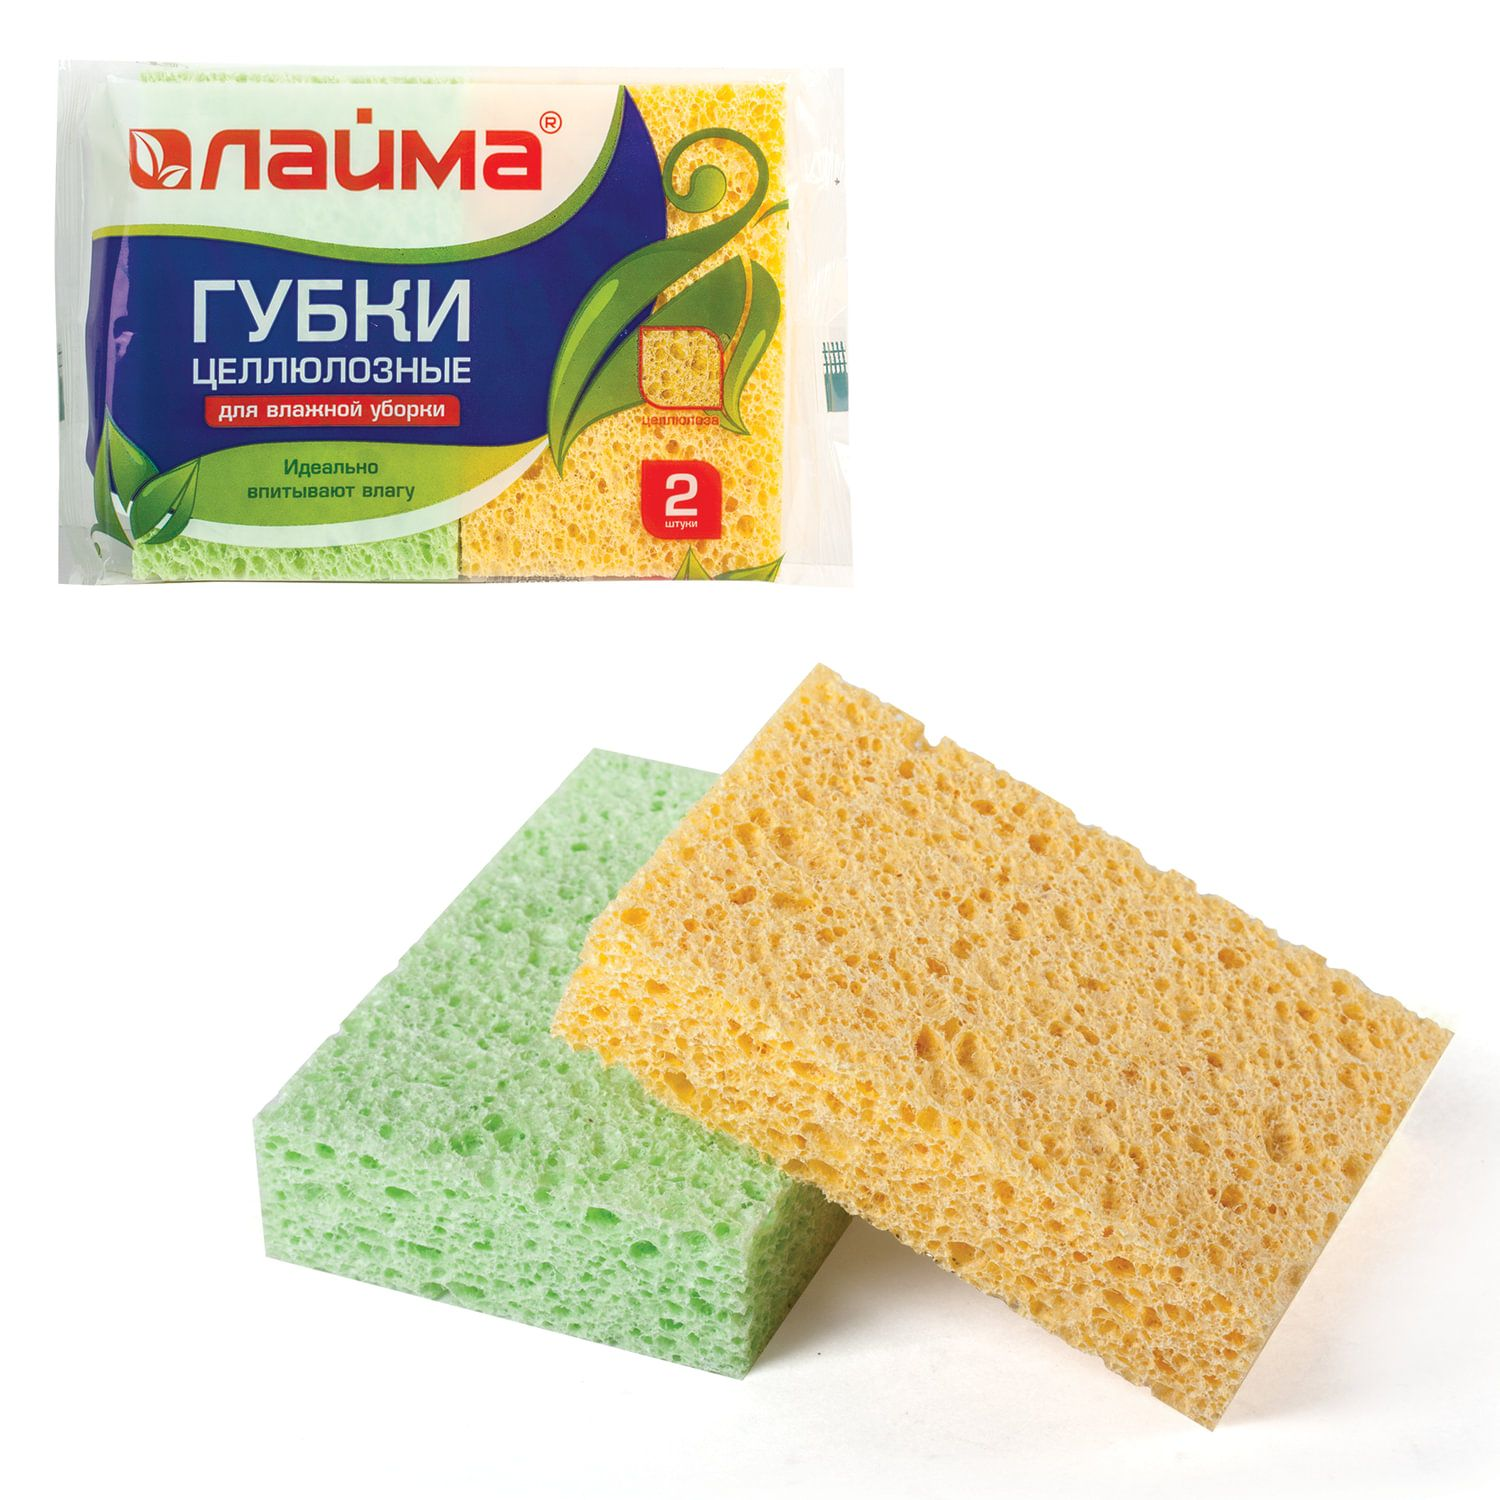 LIMA / Household sponges, set of 2 pcs., Cellulose (spongy) for dishes and cleaning, height 20 x width 95 x depth 65 mm